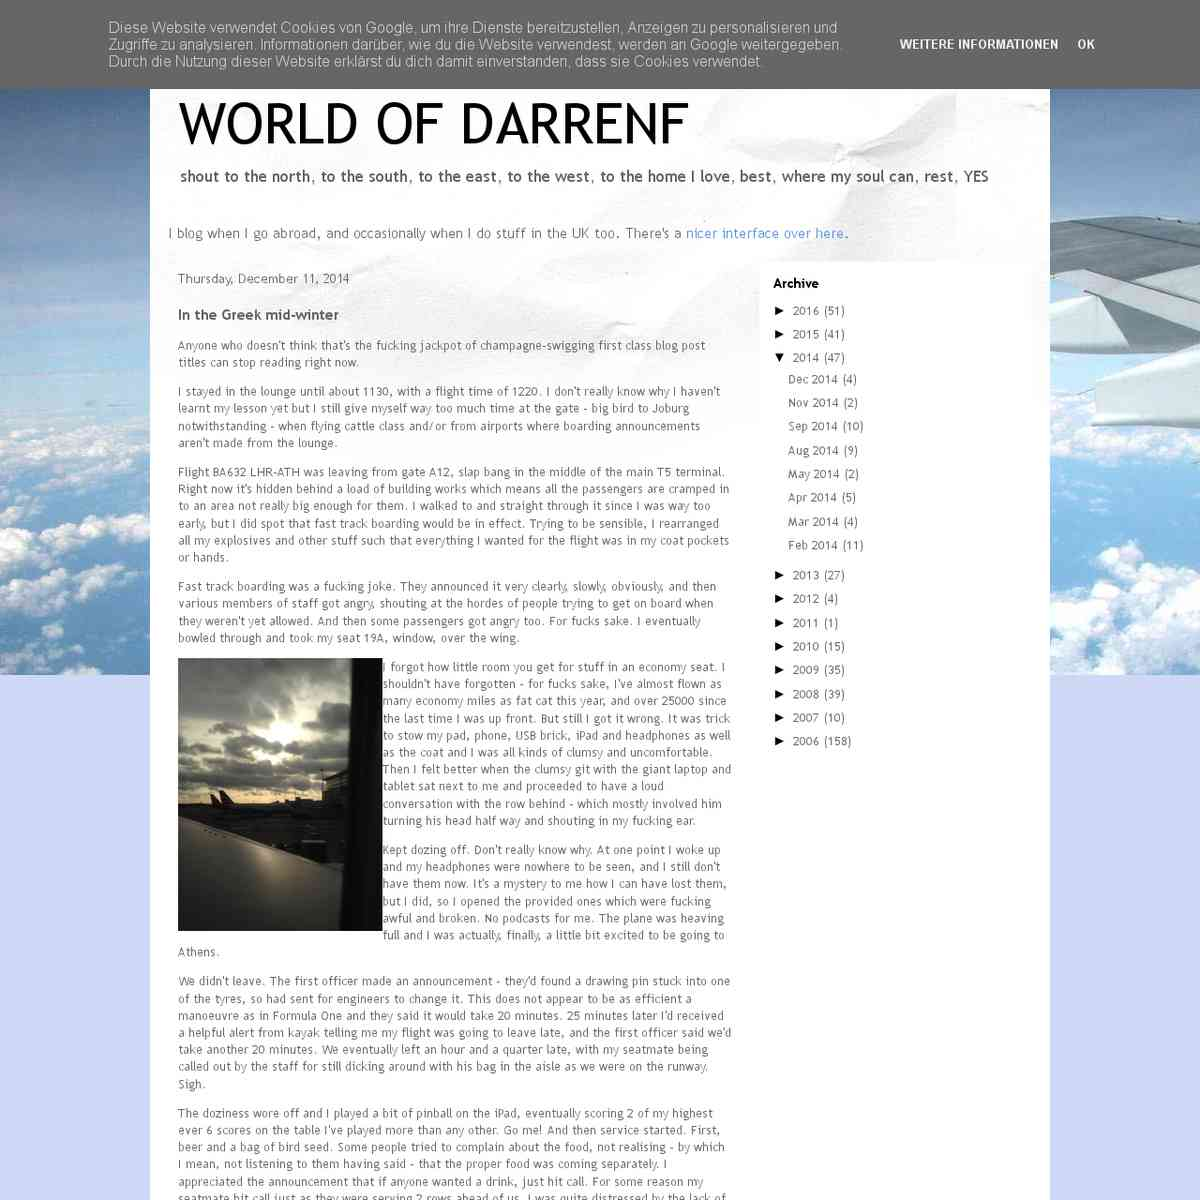 blog.darrenf.org/2014/12/in-greek-mid-winter.html